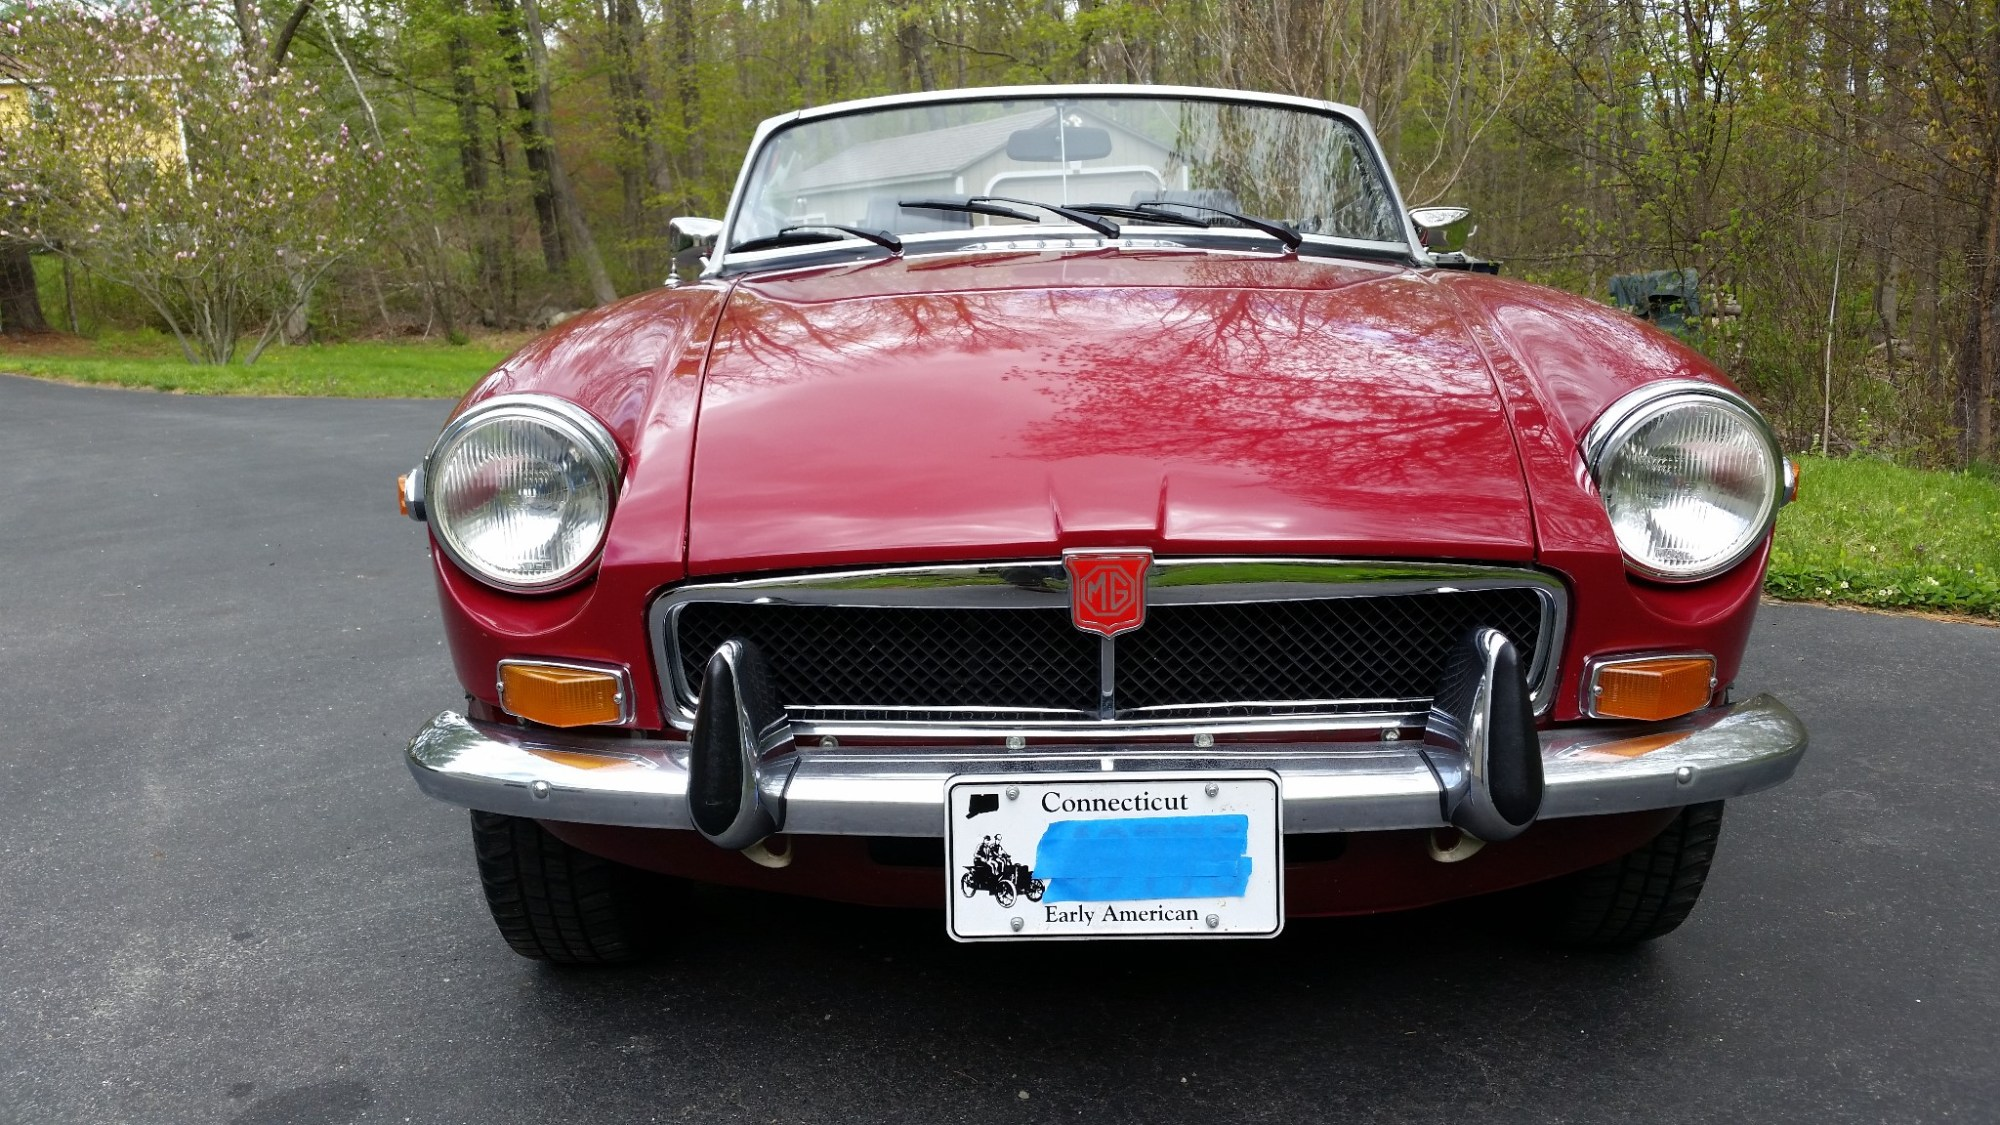 hight resolution of 1974 mgb roadster for sale on bat auctions sold for 14 000 on june 20 2017 lot 4 686 mgb engine wiring mgb headlight wiring